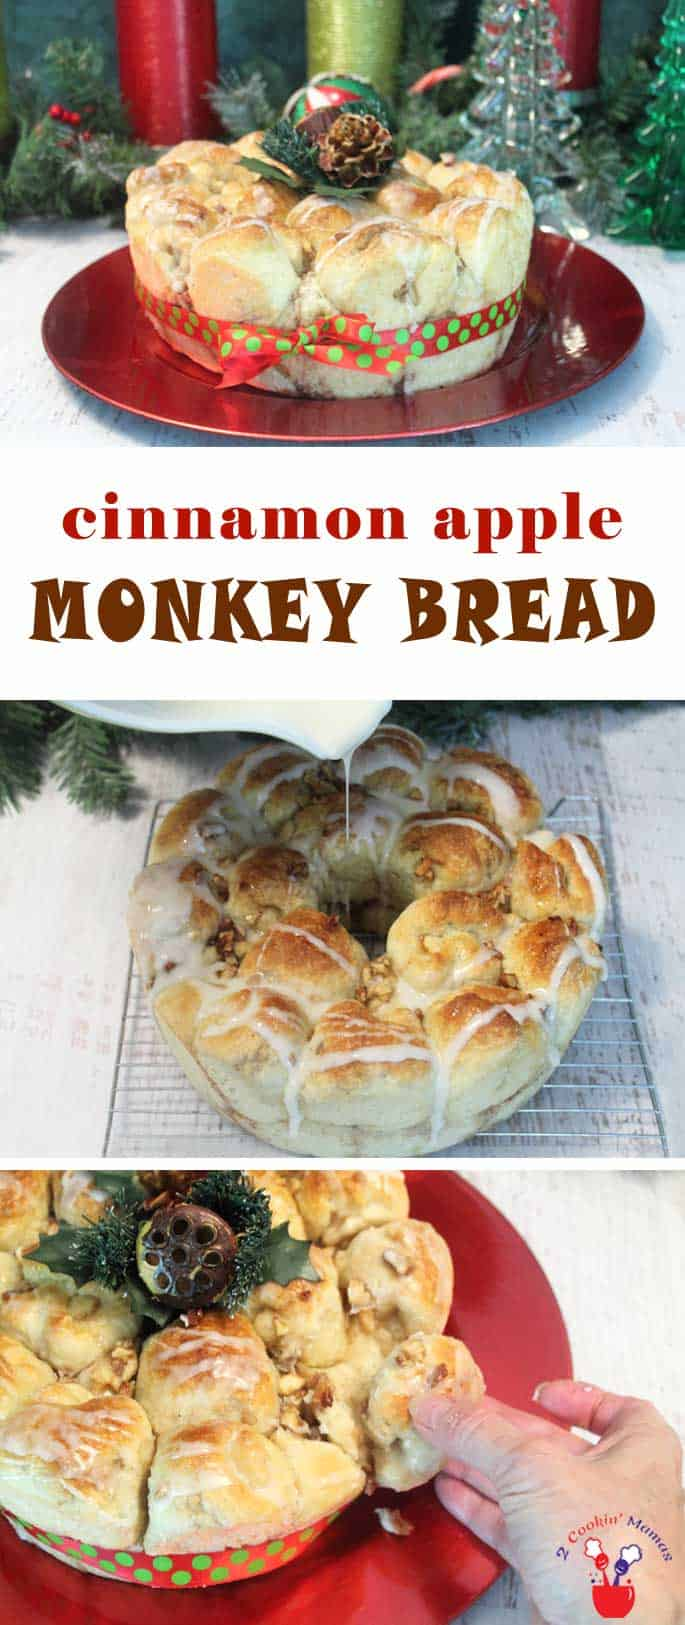 Little balls of sweet dough filled with cinnamon apples and pecans make this cinnamon apple monkey bread a breakfast favorite.  #breakfast #monkeybread #bread #recipe #apples